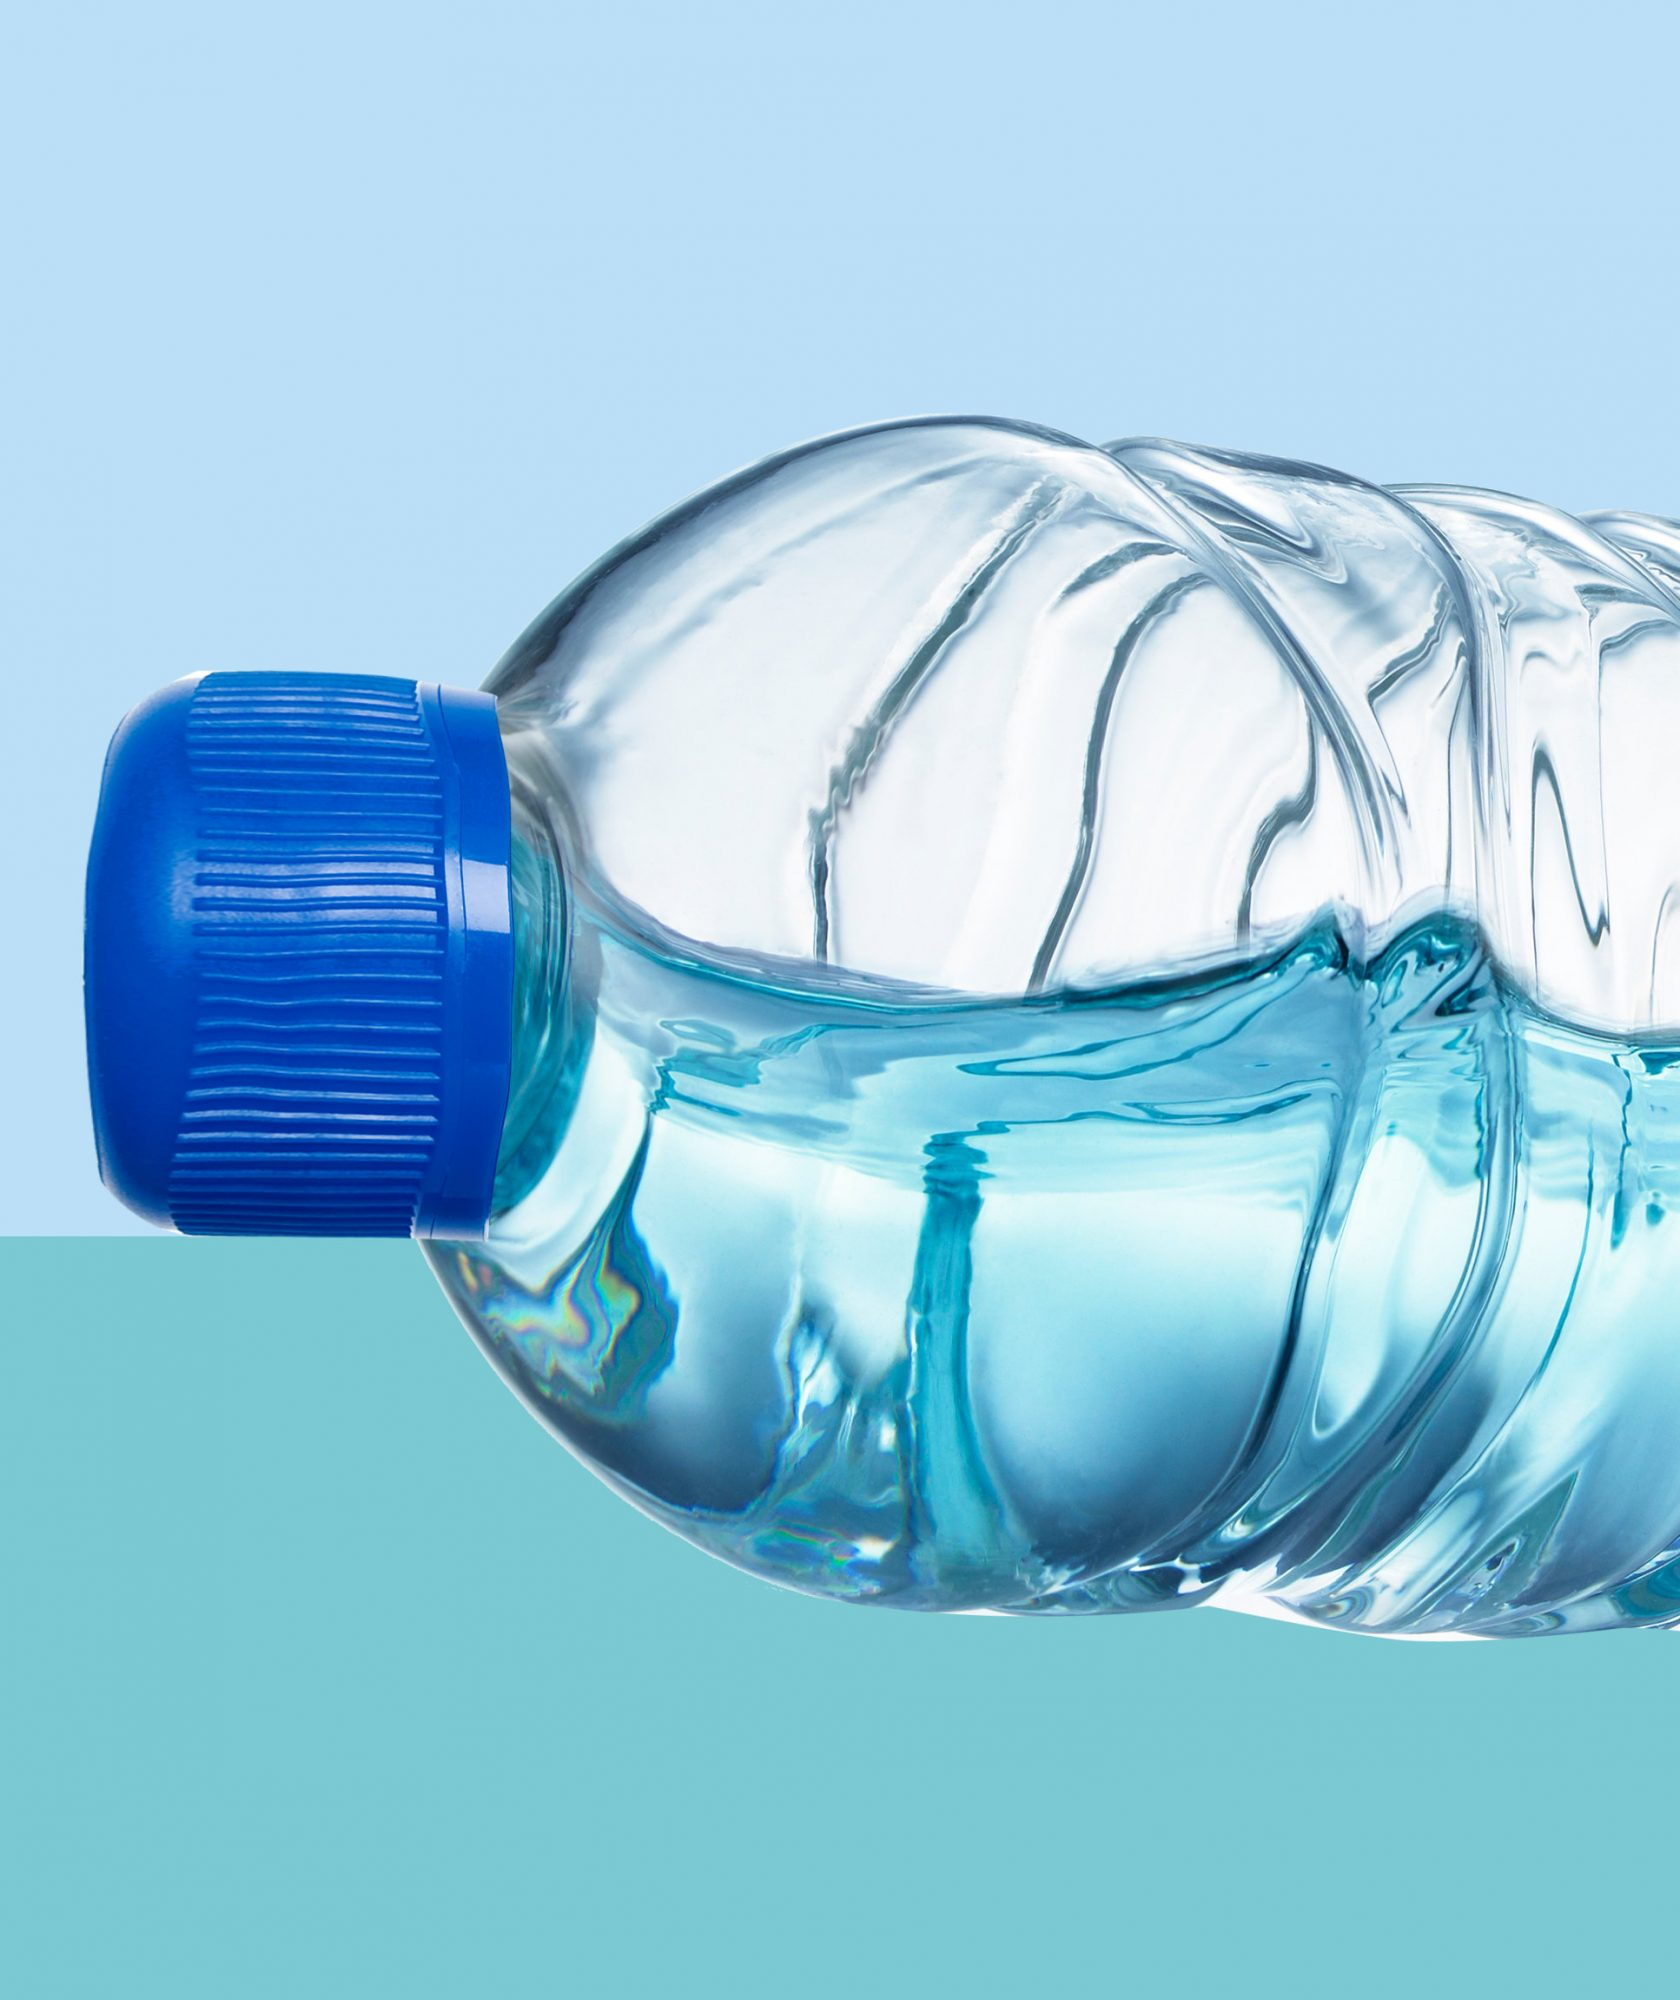 San Francisco International Airport to Stop Selling Plastic Water Bottles